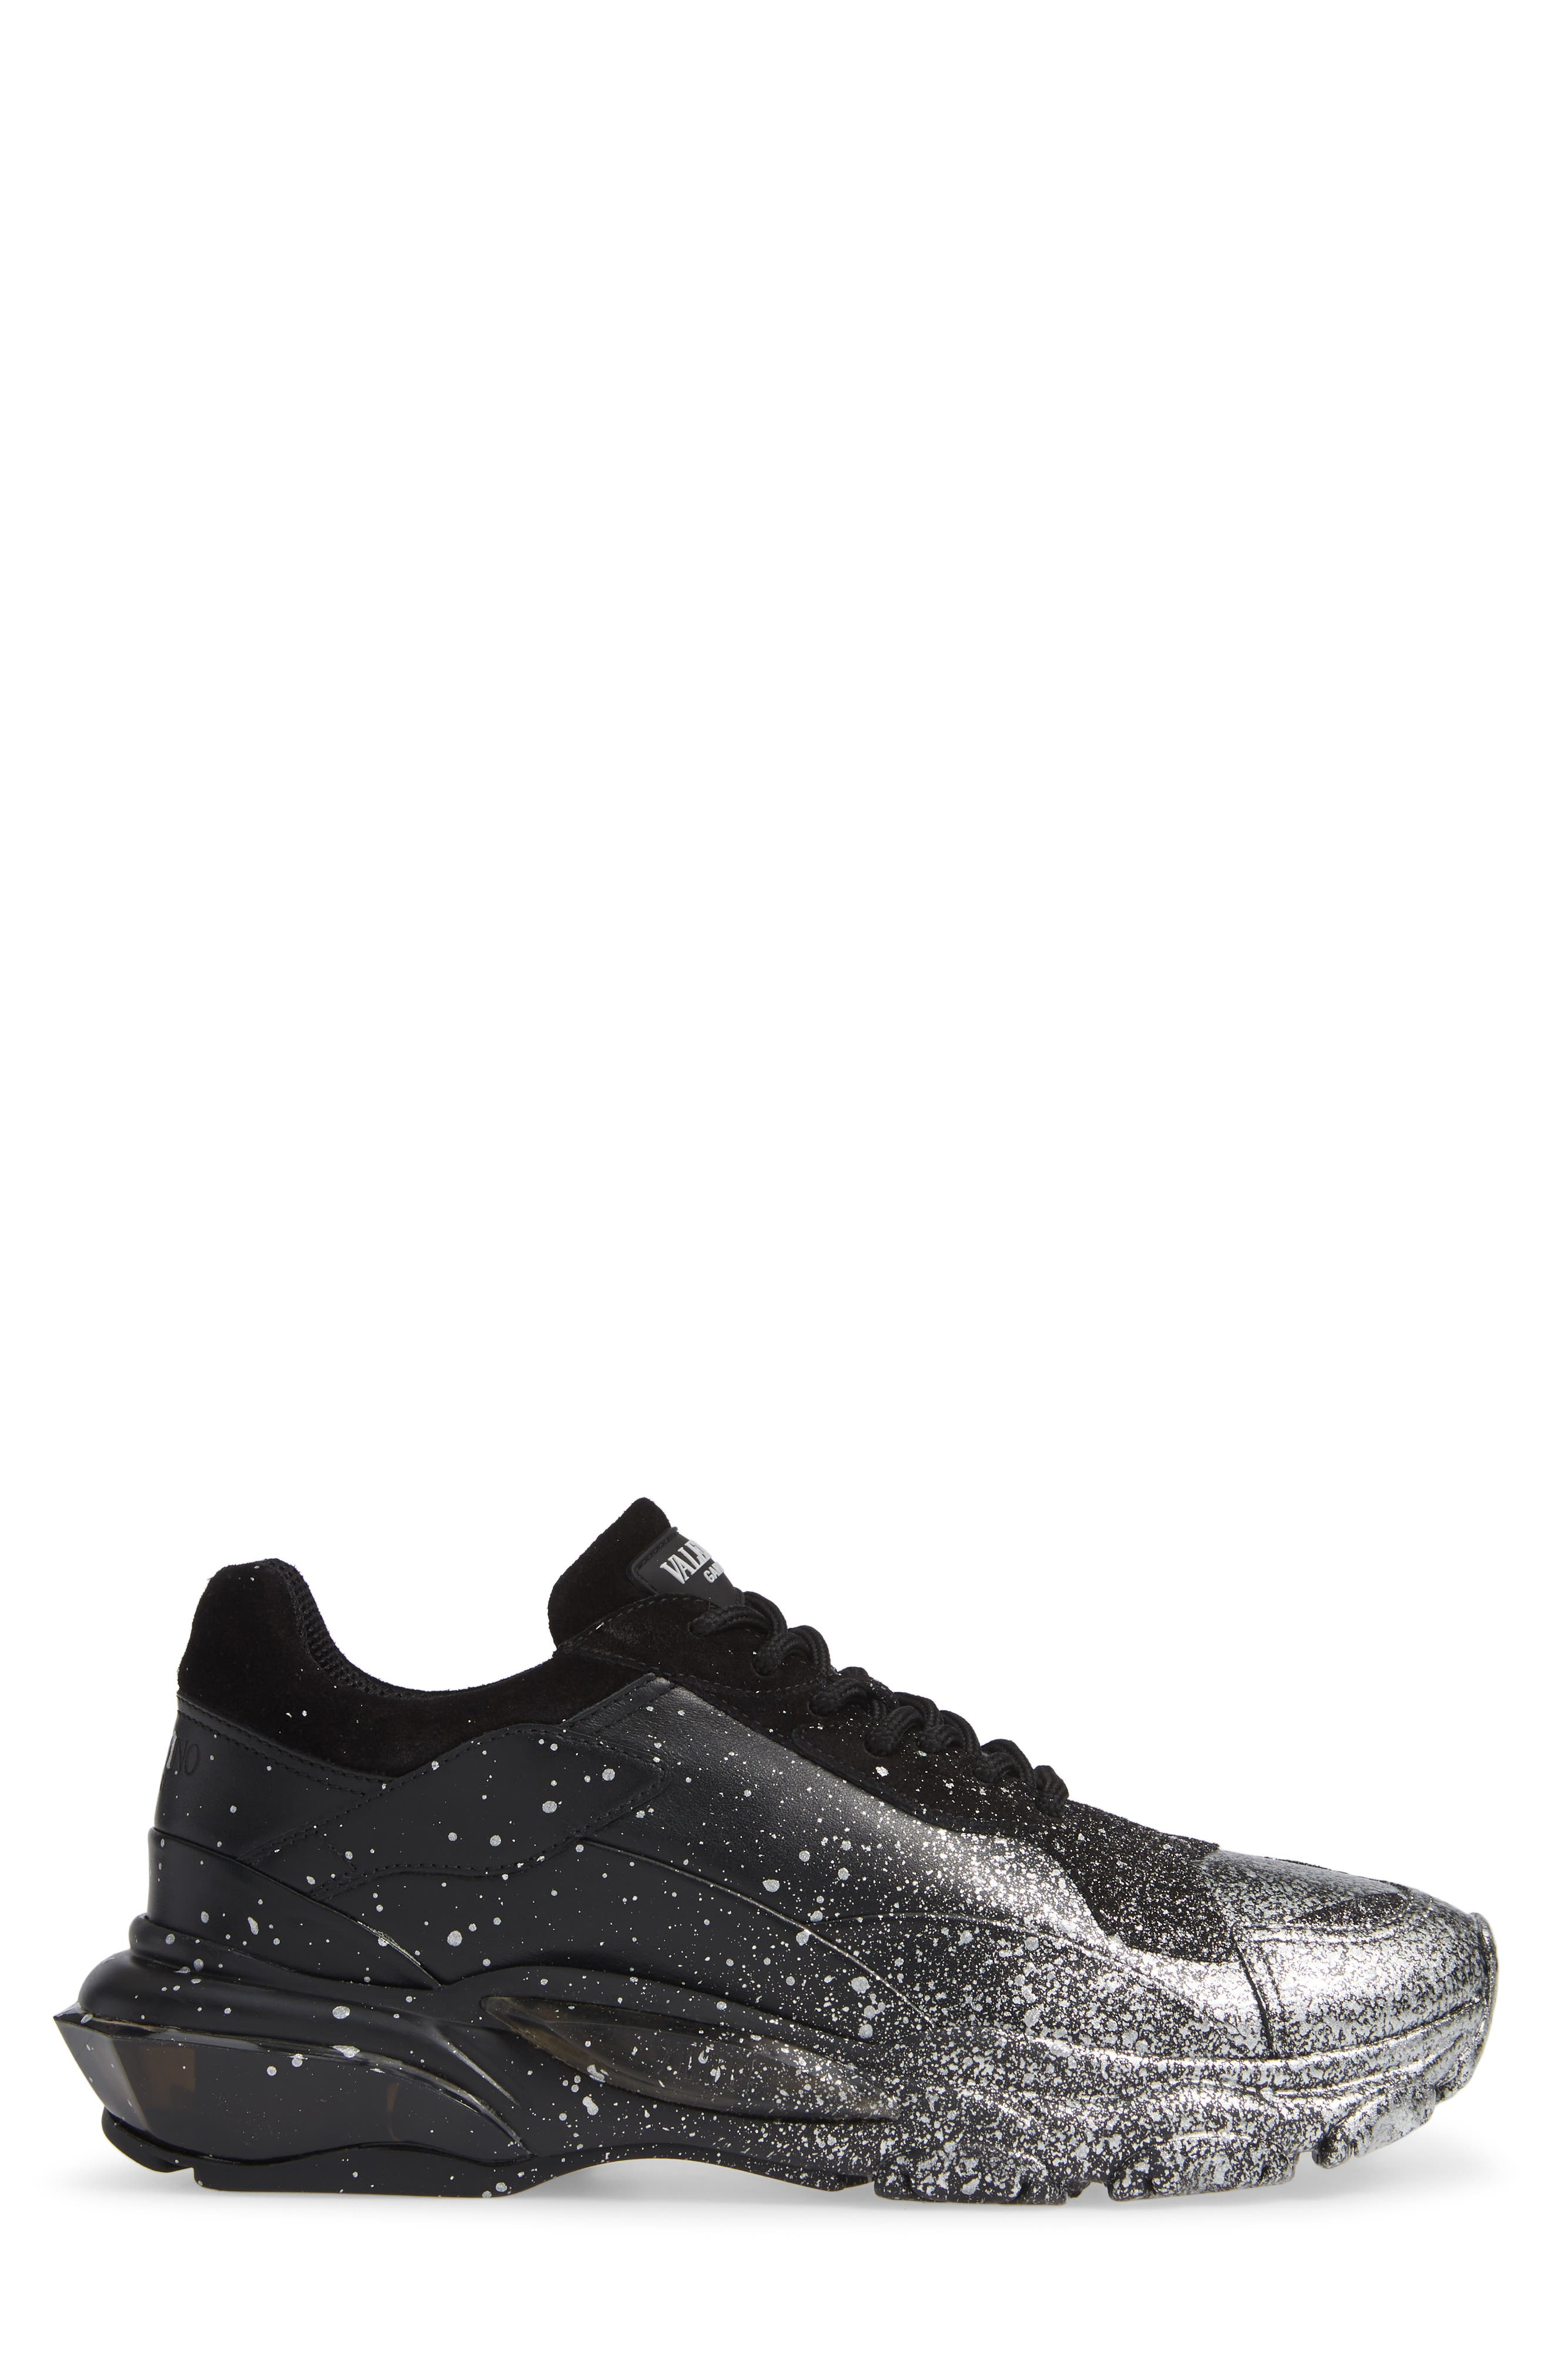 Bounce Paint Splatter Sneaker,                             Alternate thumbnail 3, color,                             BLACK/ SILVER